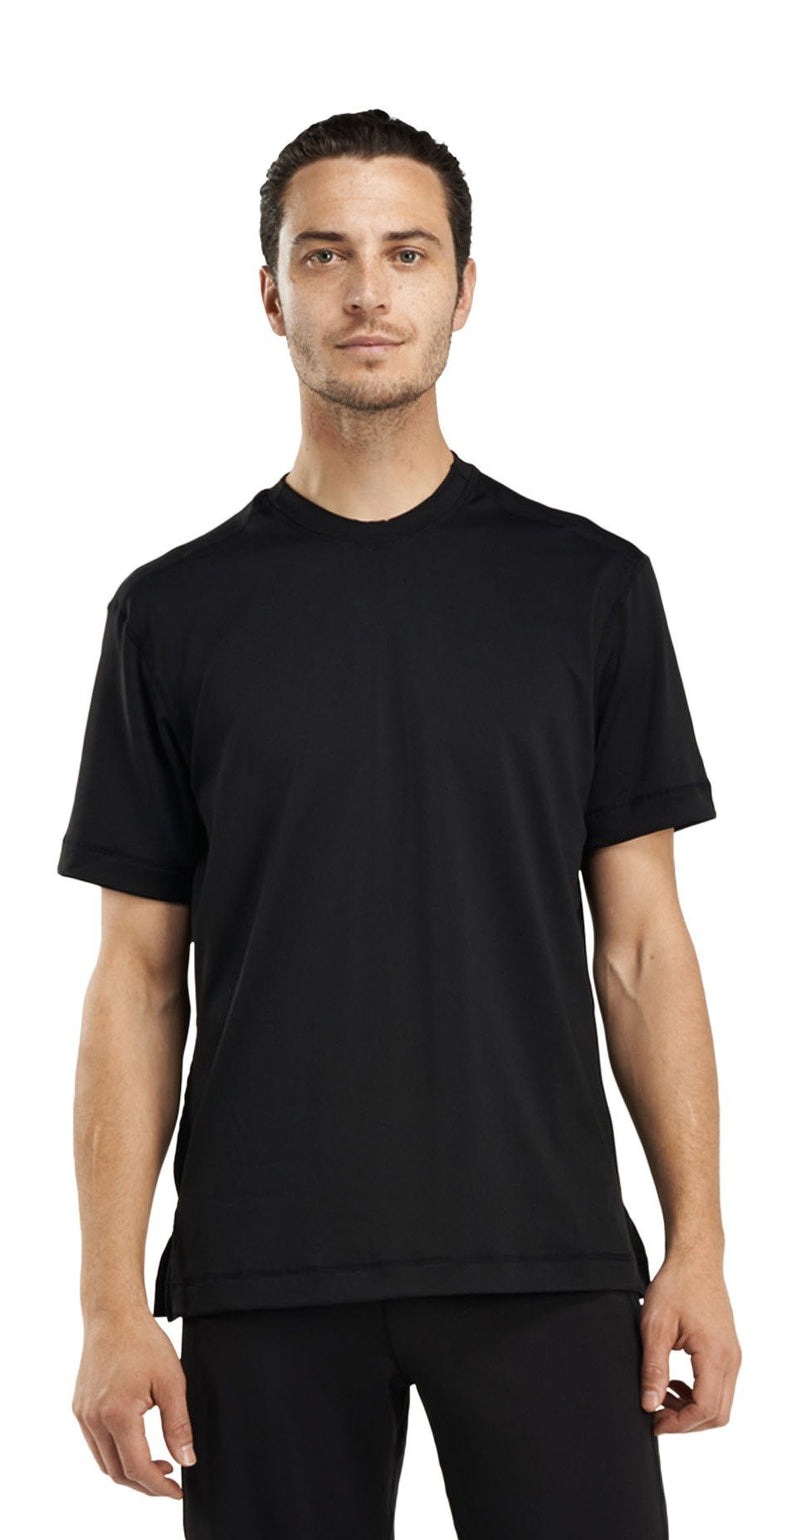 Men's Basic Fitness T